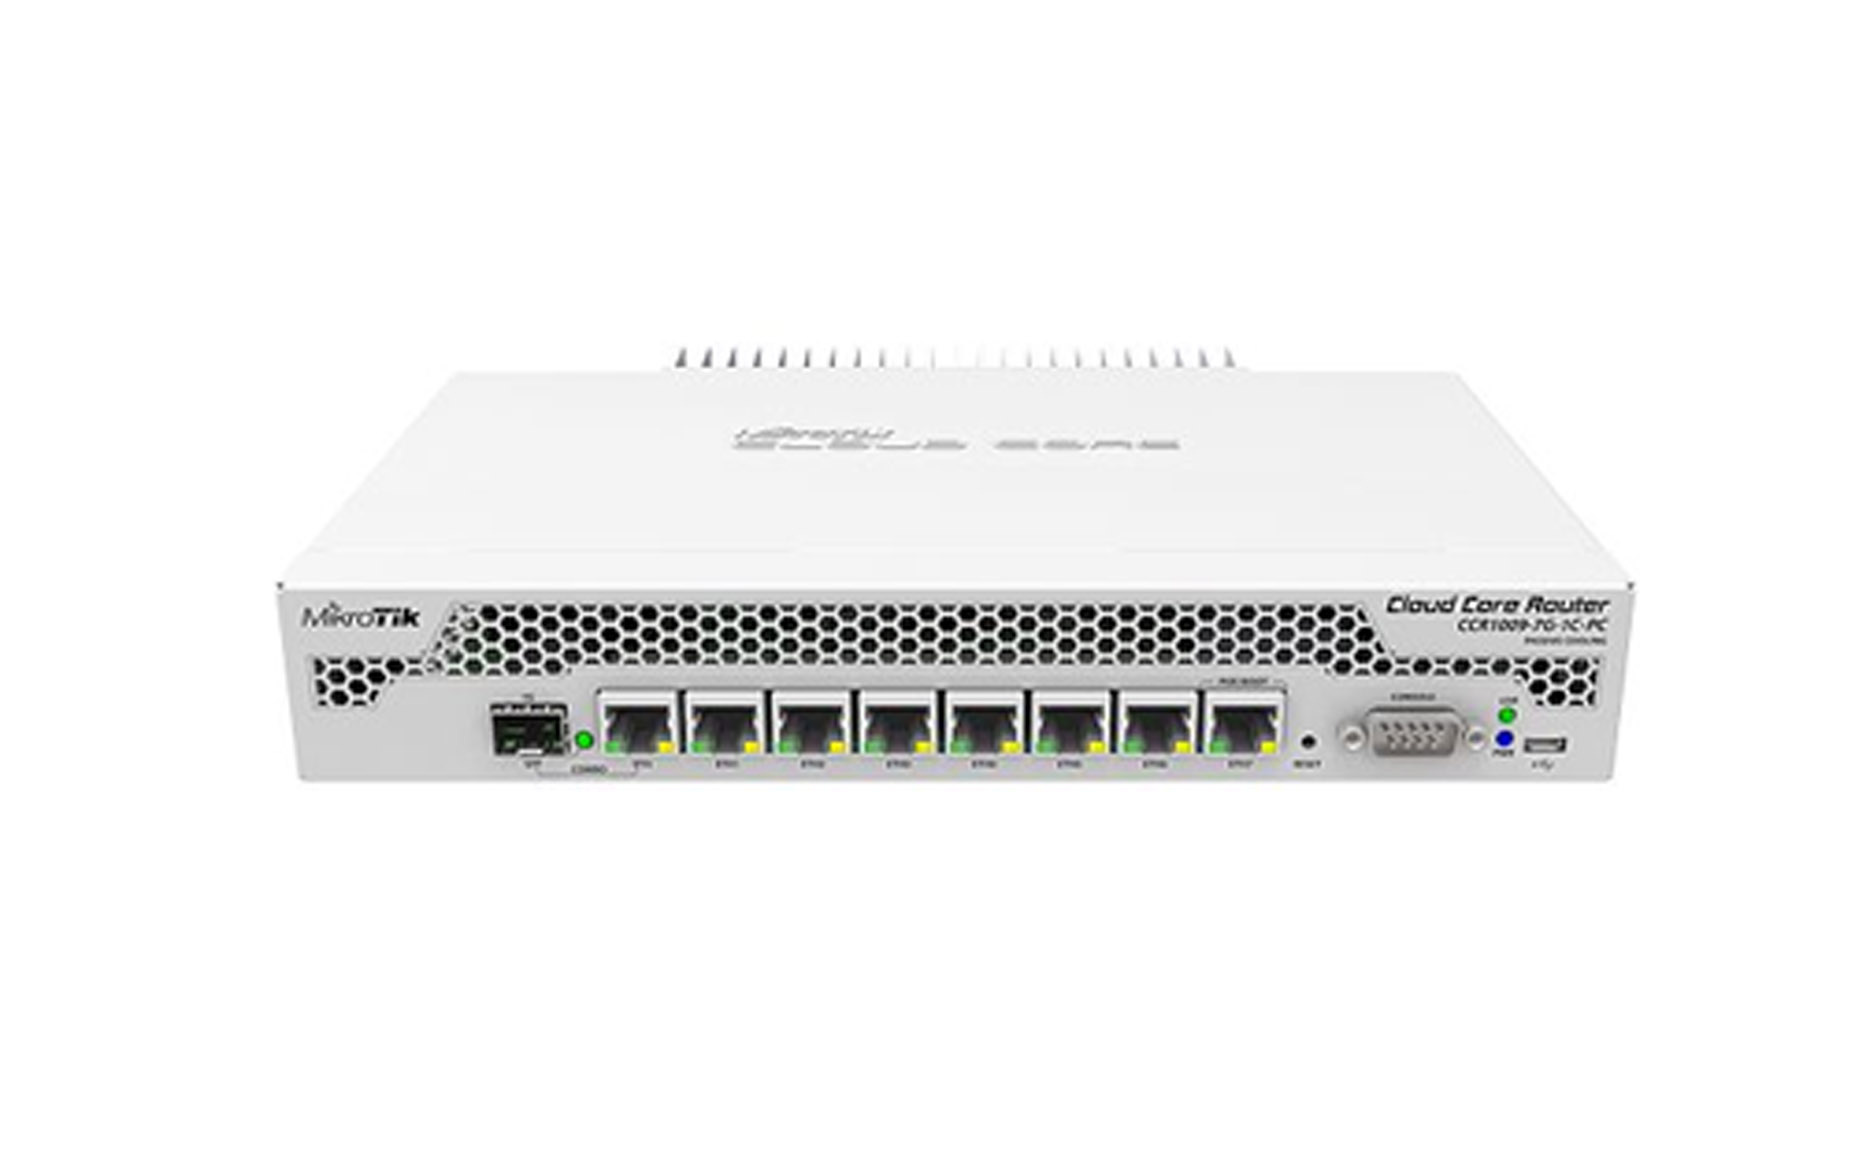 Harga Jual Mikrotik Ccr1009 7g 1c Pc Cloud Core Router Embedded Wireless Client Sxtg 2hnd 24ghz Mimo Info Lainnya